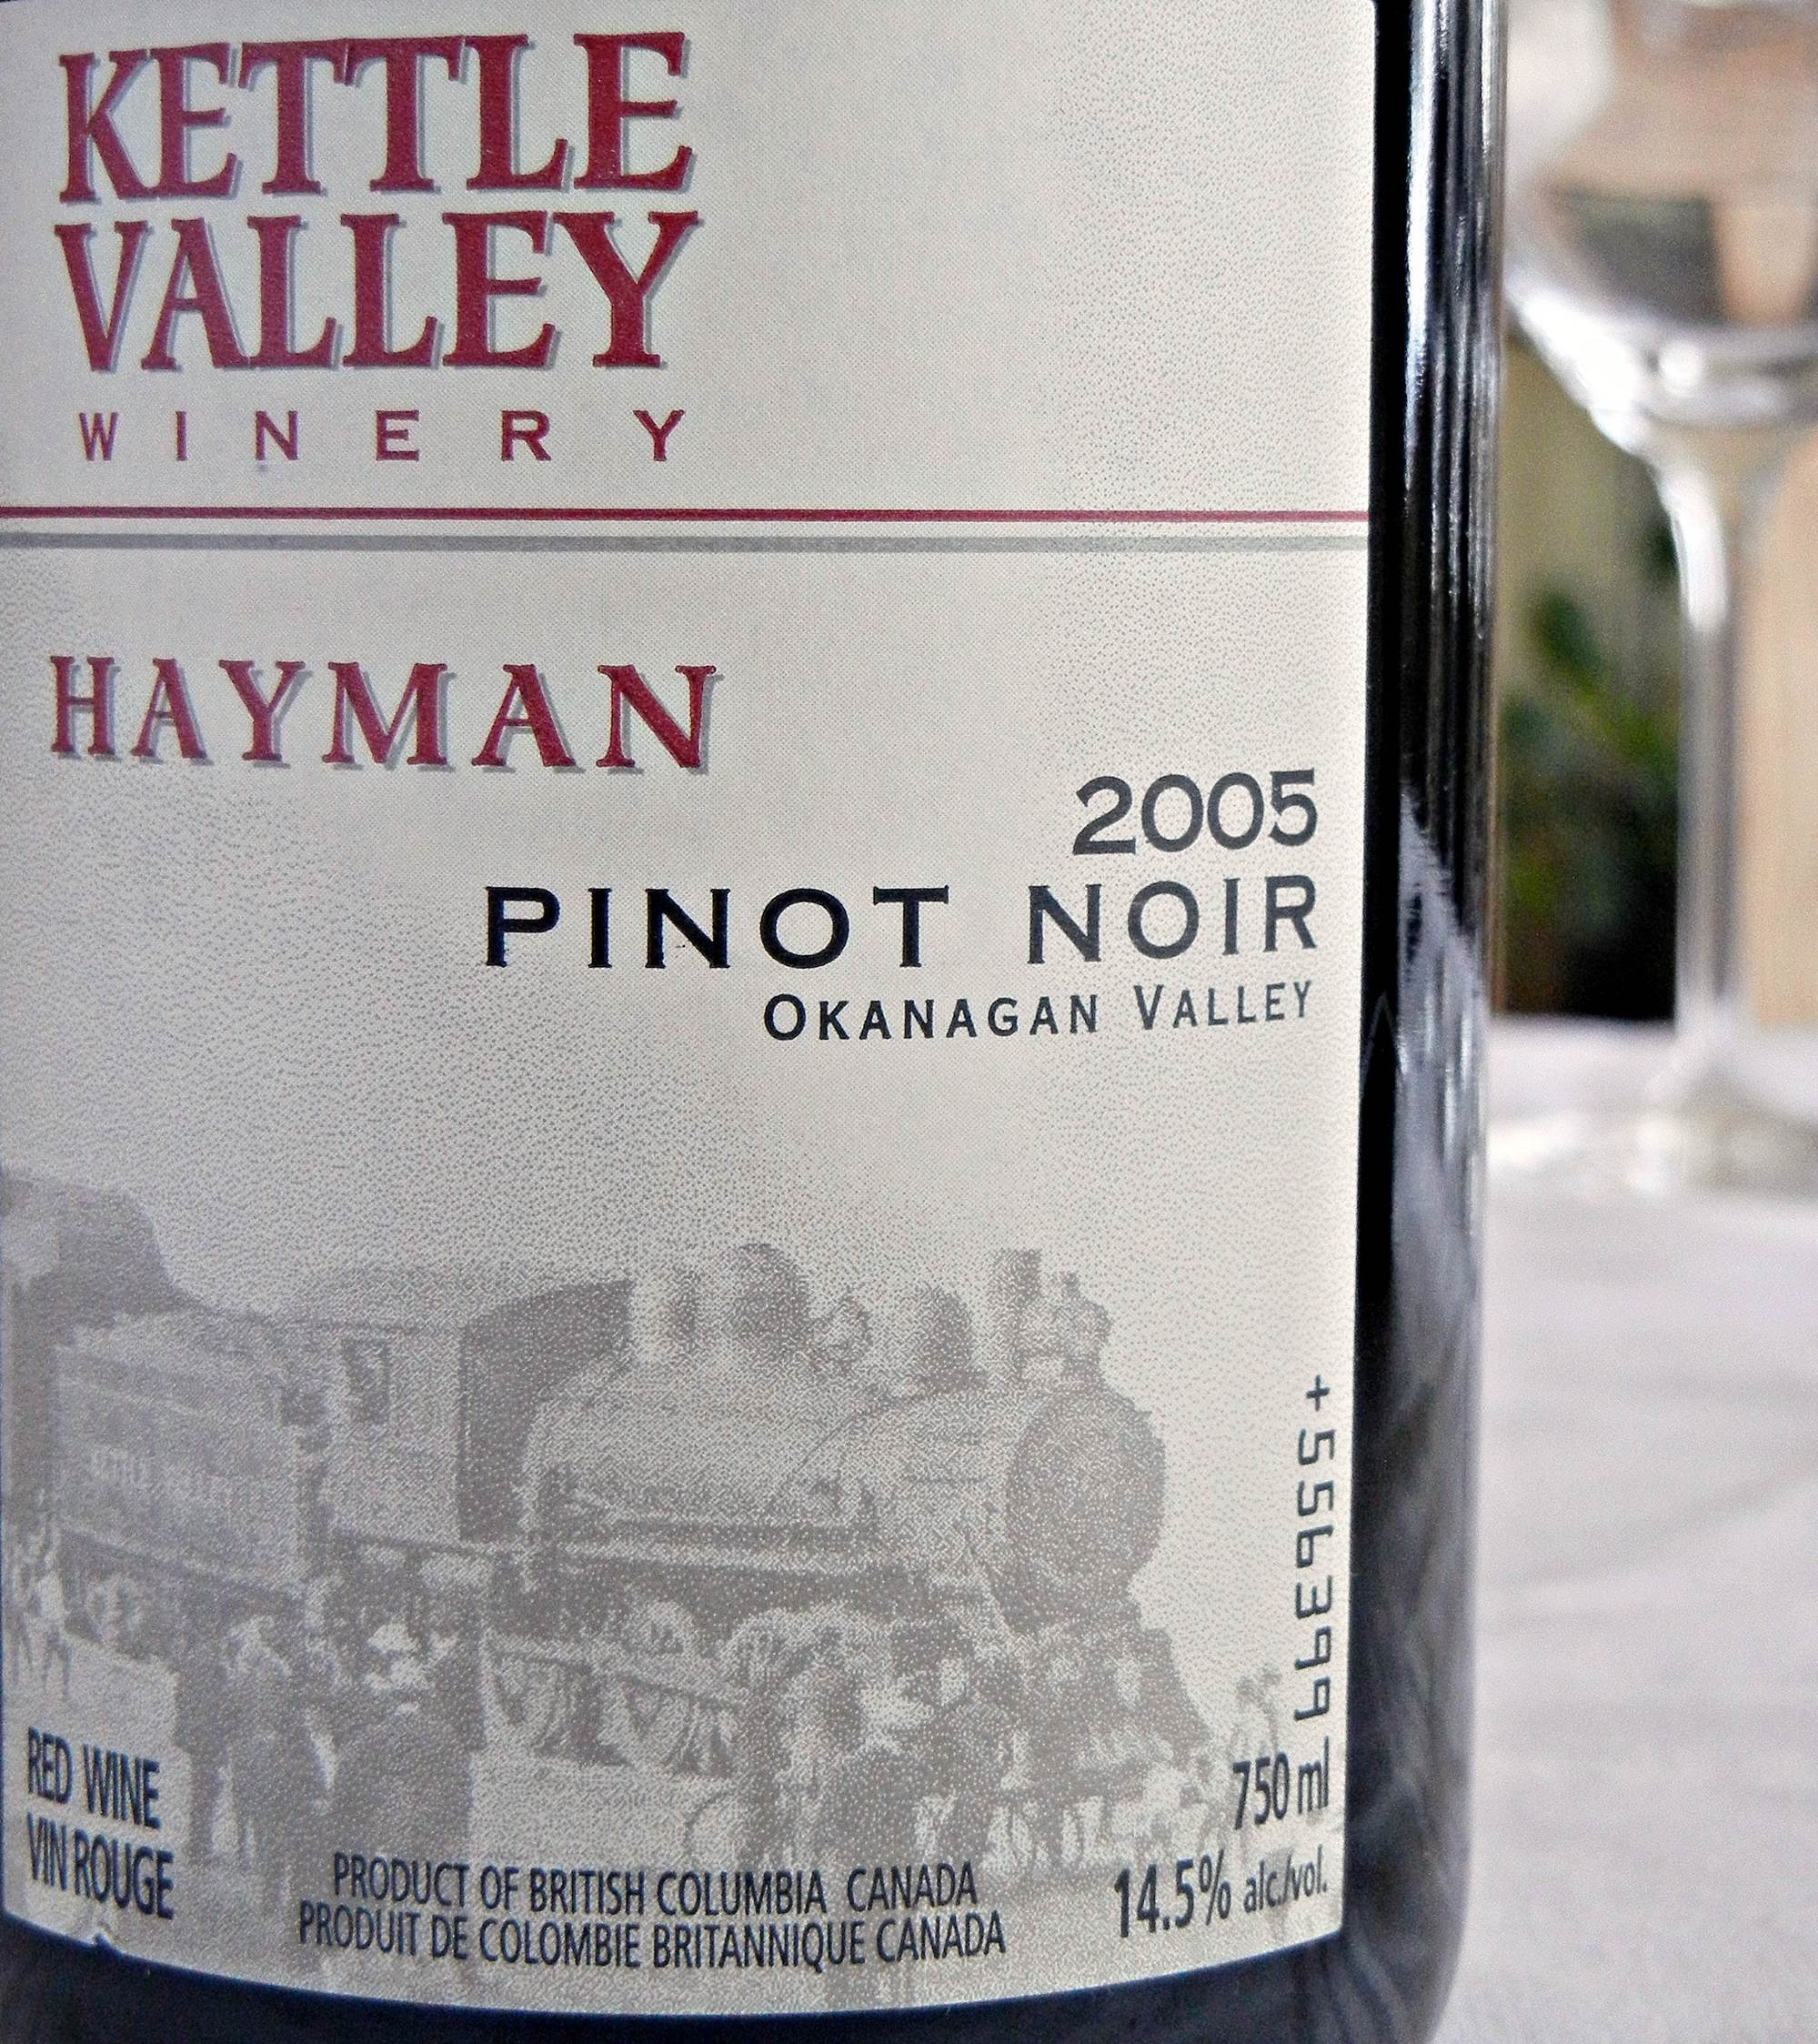 Kettle Valley Hayman Pinot Noir 2005 Label - BC Pinot Noir Tasting Review 25